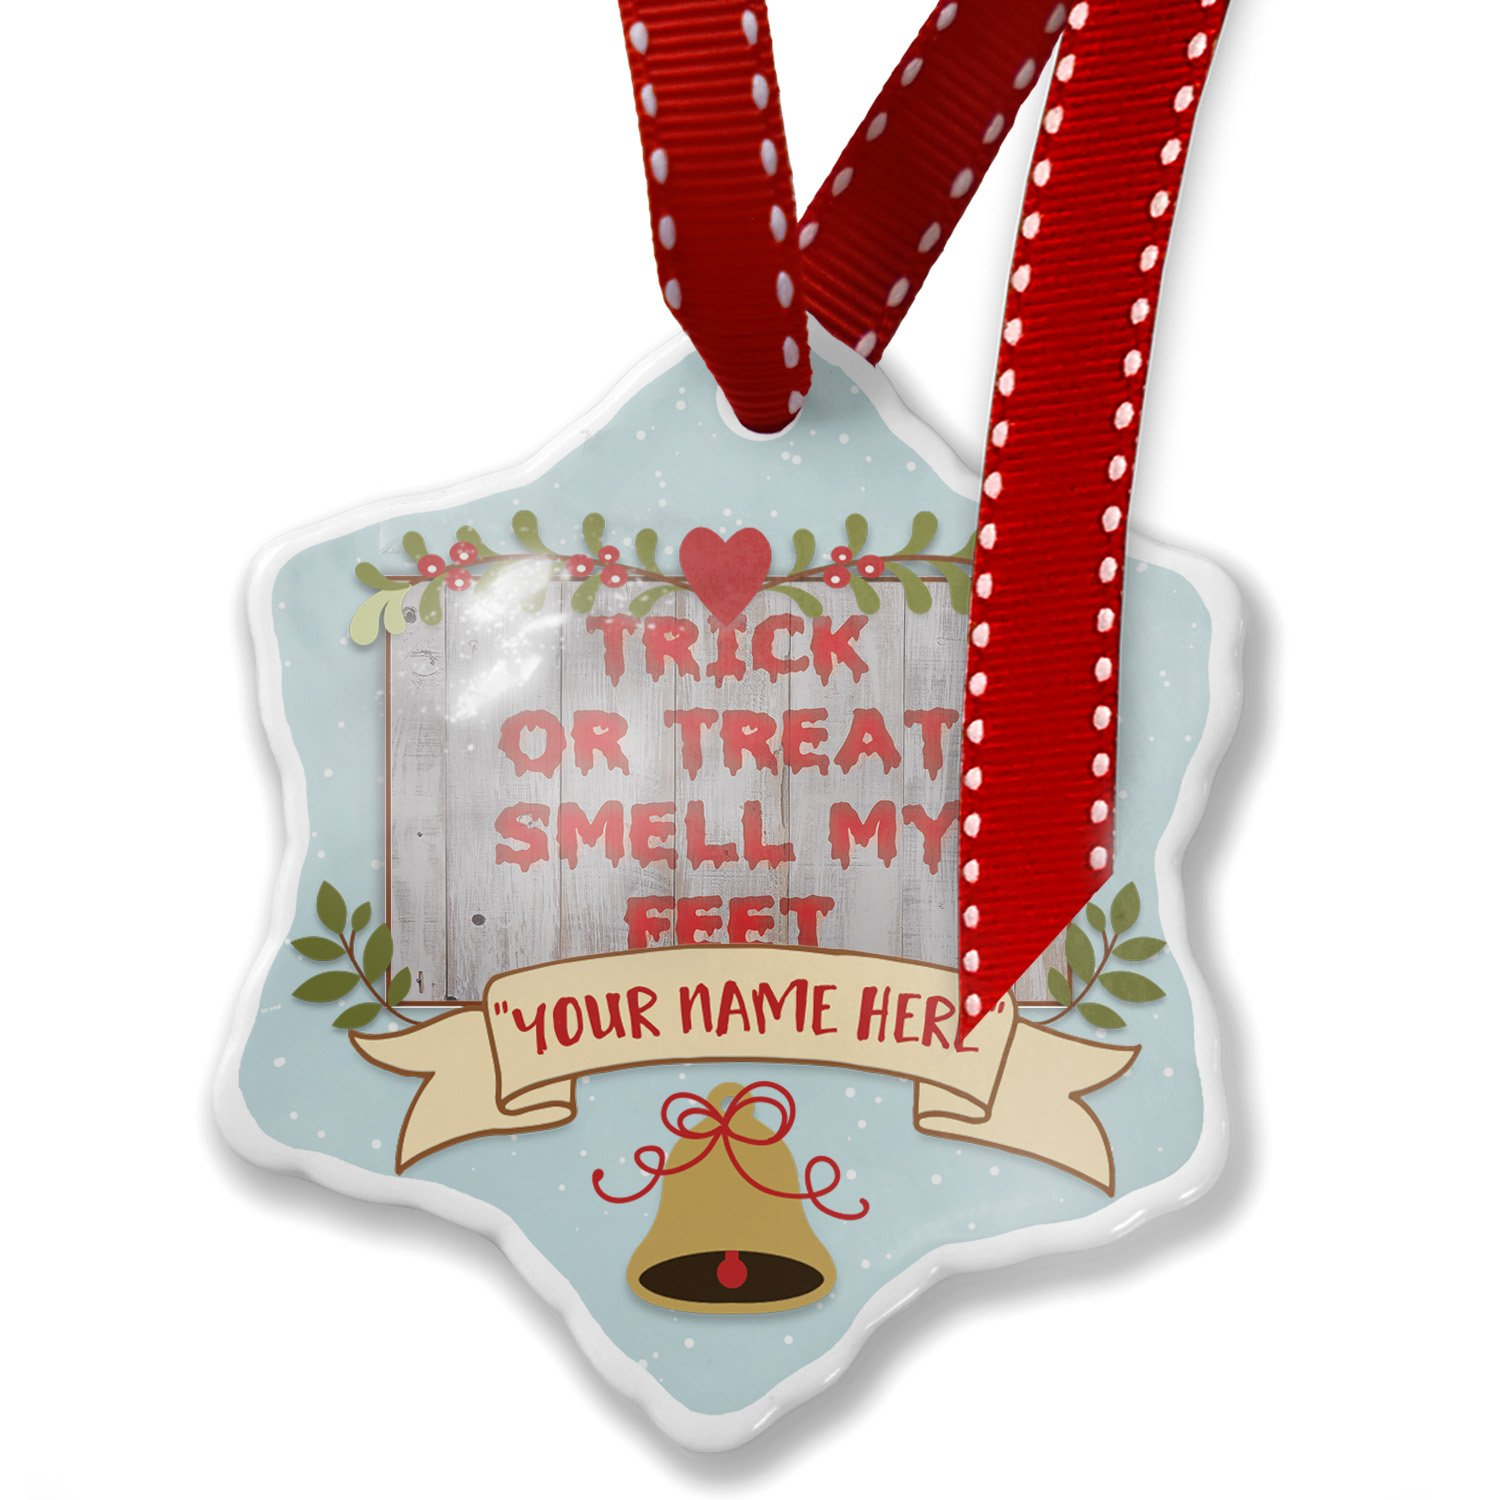 Add Your Own Custom Name, Trick or Treat Smell My Feet Halloween Bloody Wall Christmas Ornament NEONBLOND